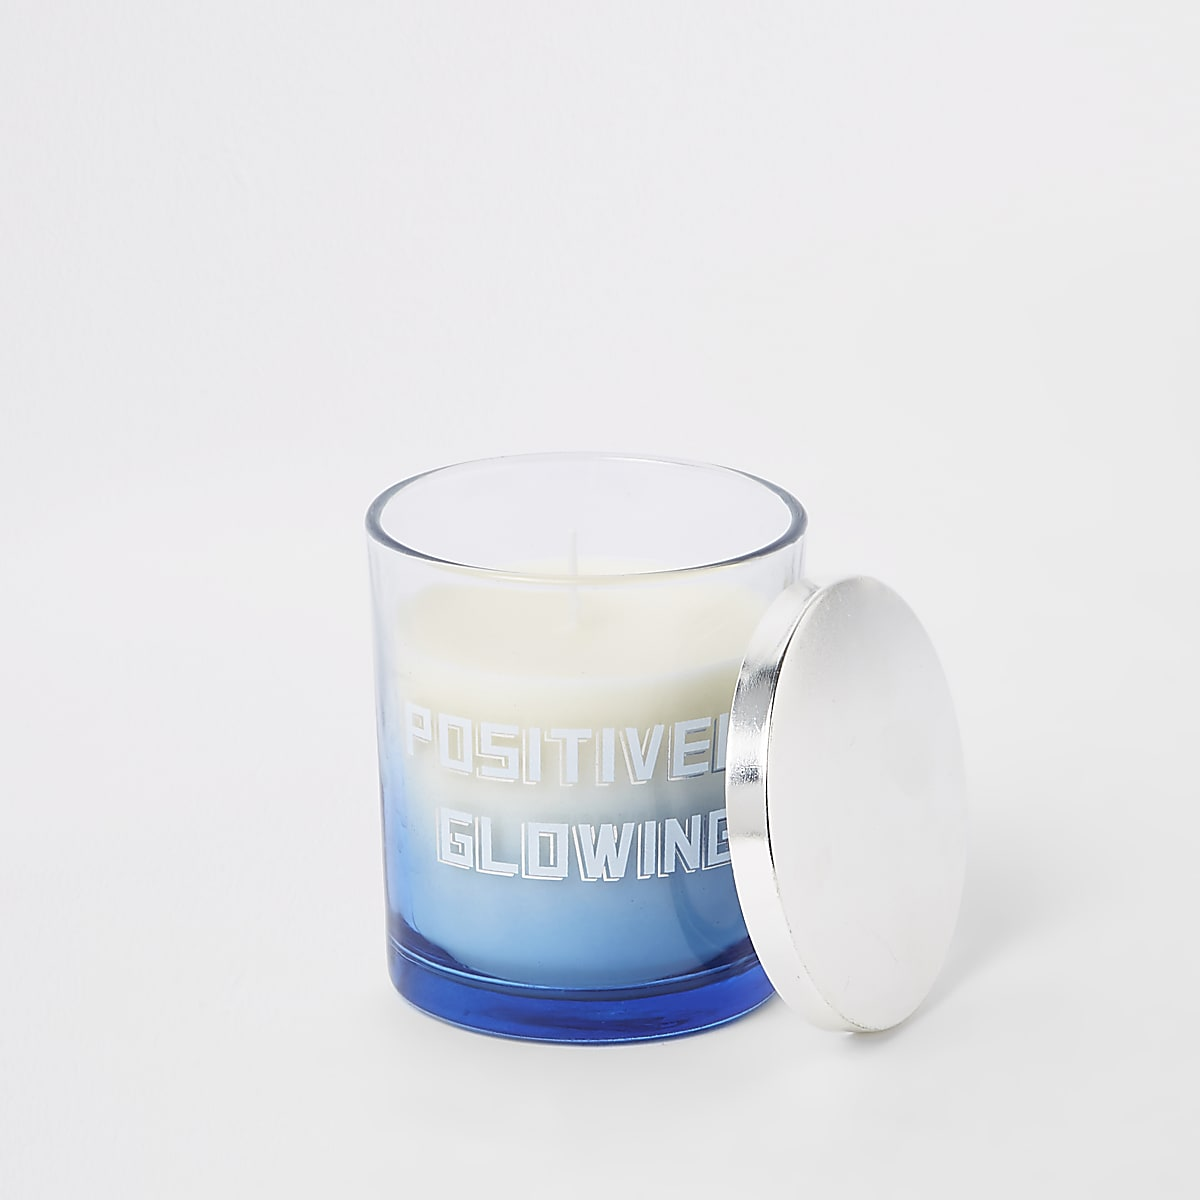 White vanilla 'positively glowing' candle